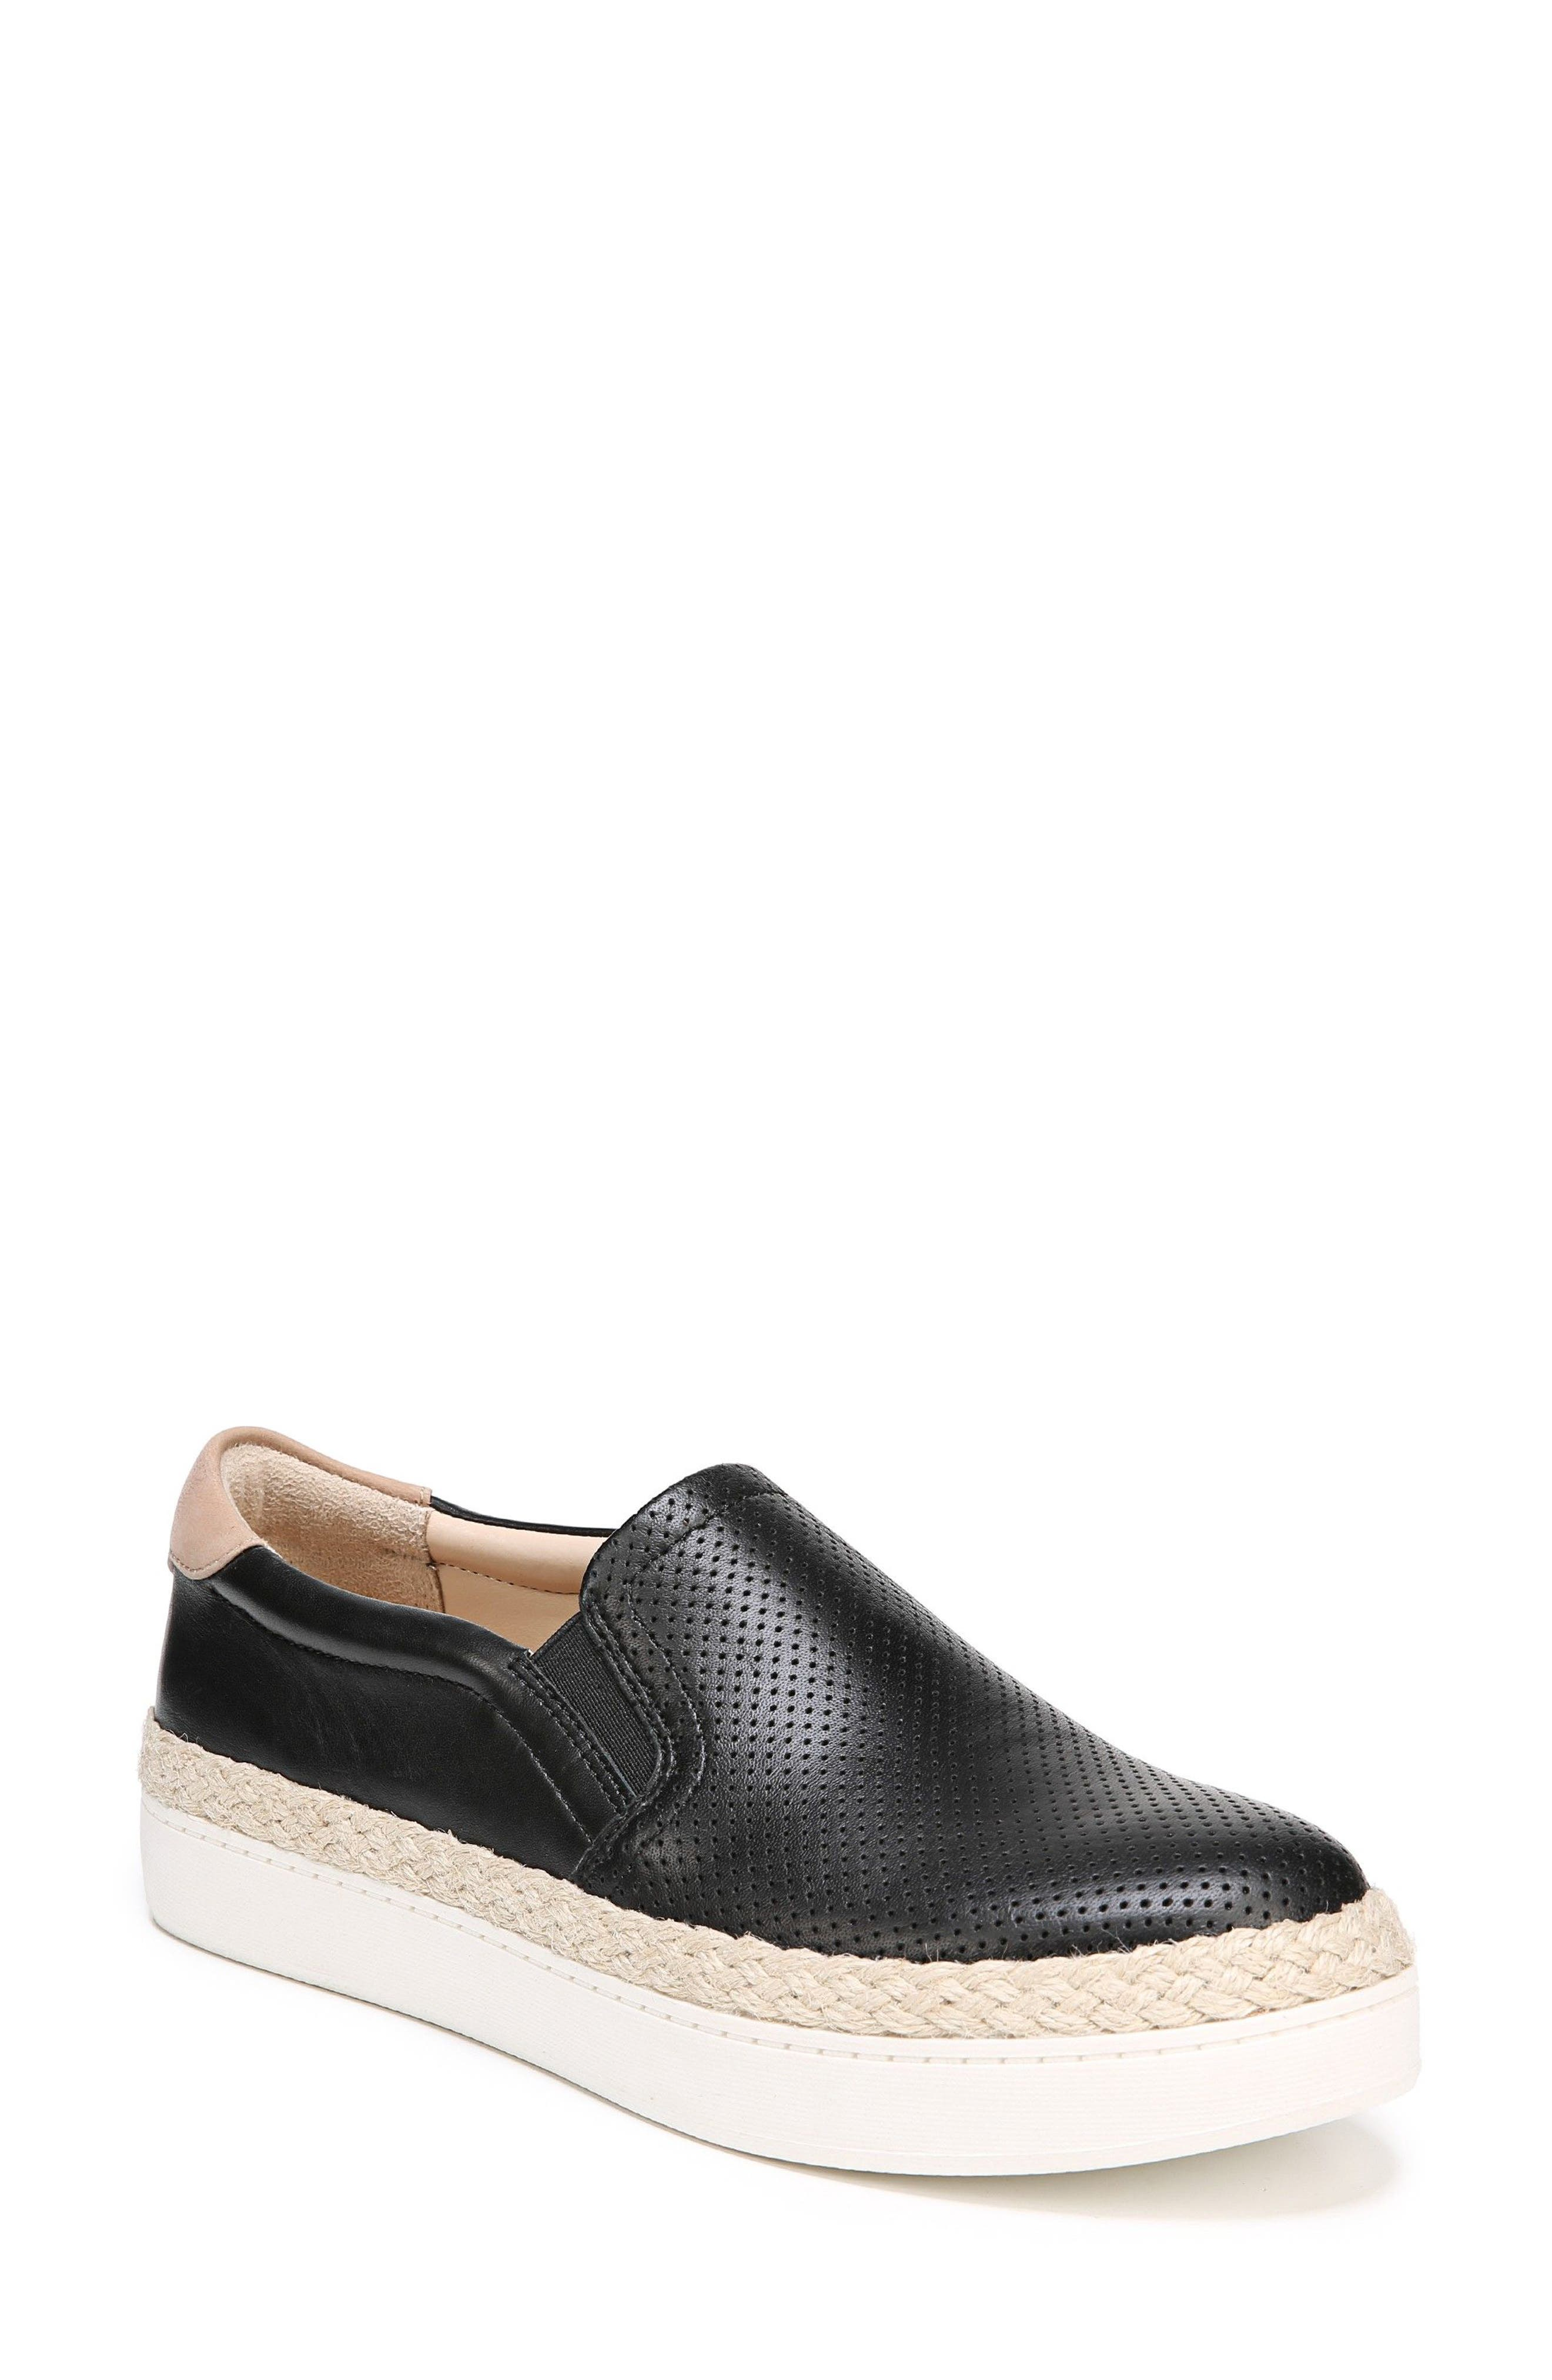 DR. SCHOLL'S Scout Slip-On Sneaker, Main, color, BLACK LEATHER